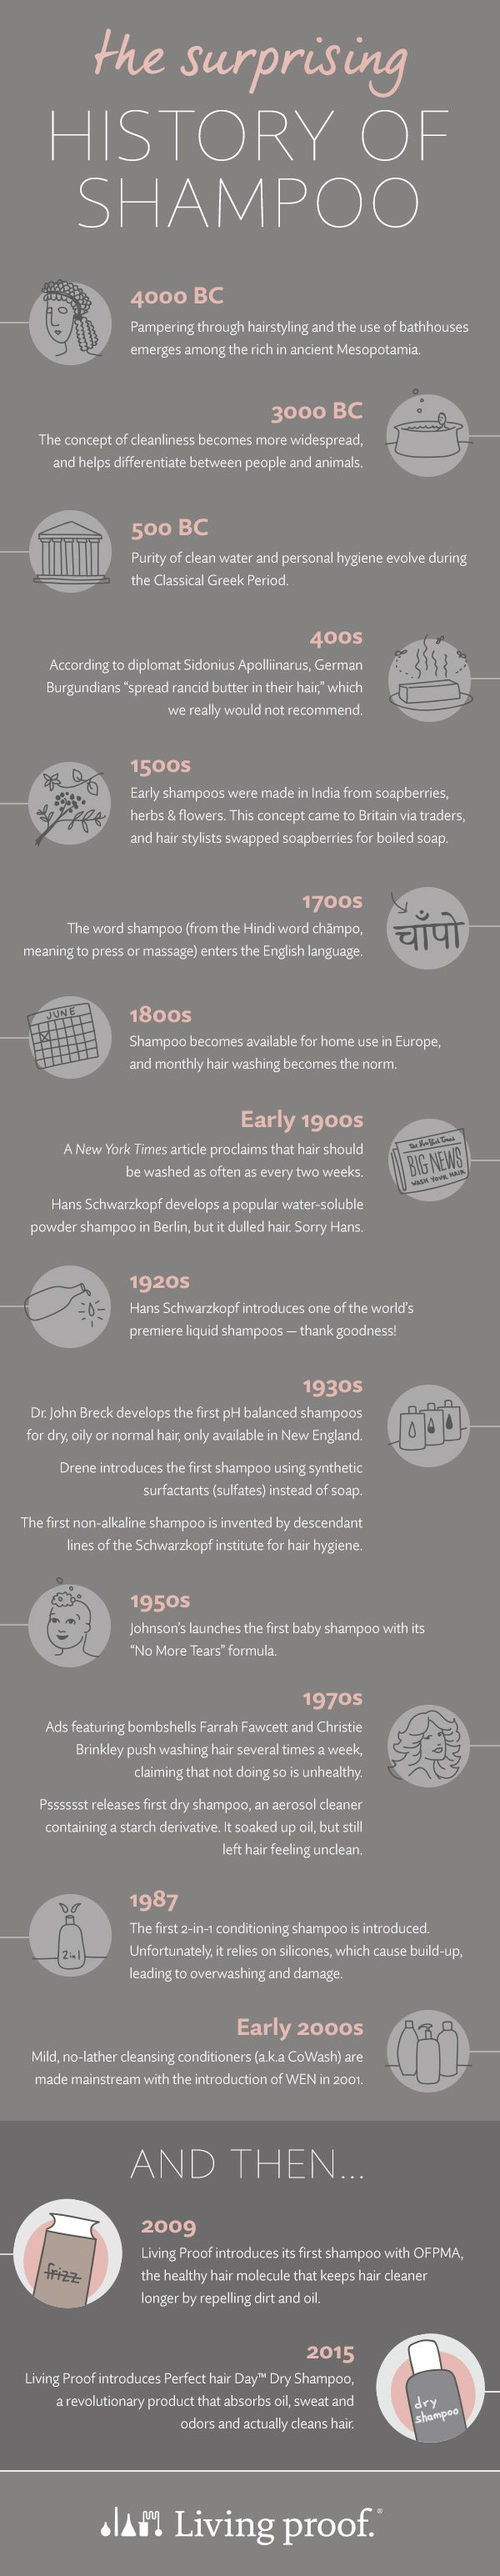 Science meets beauty: discover the history of shampoo from the emergence of #hairstyling in 4000 BC to a dry shampoo that actually cleans hair in 2015.